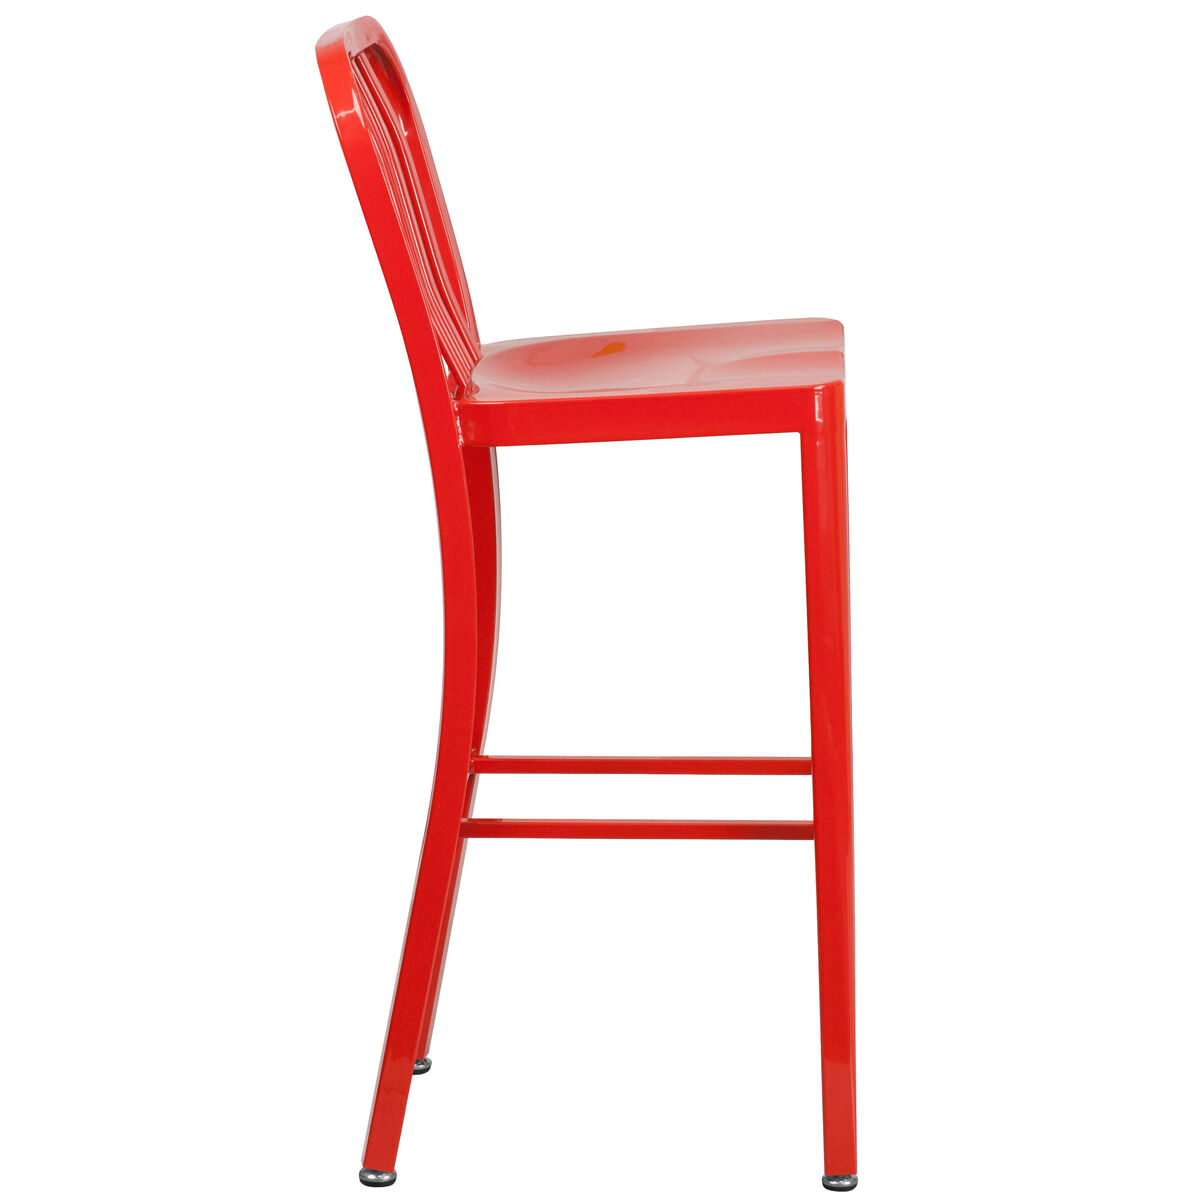 Our 30 High Red Metal Indoor Outdoor Barstool With Vertical Slat Back Is